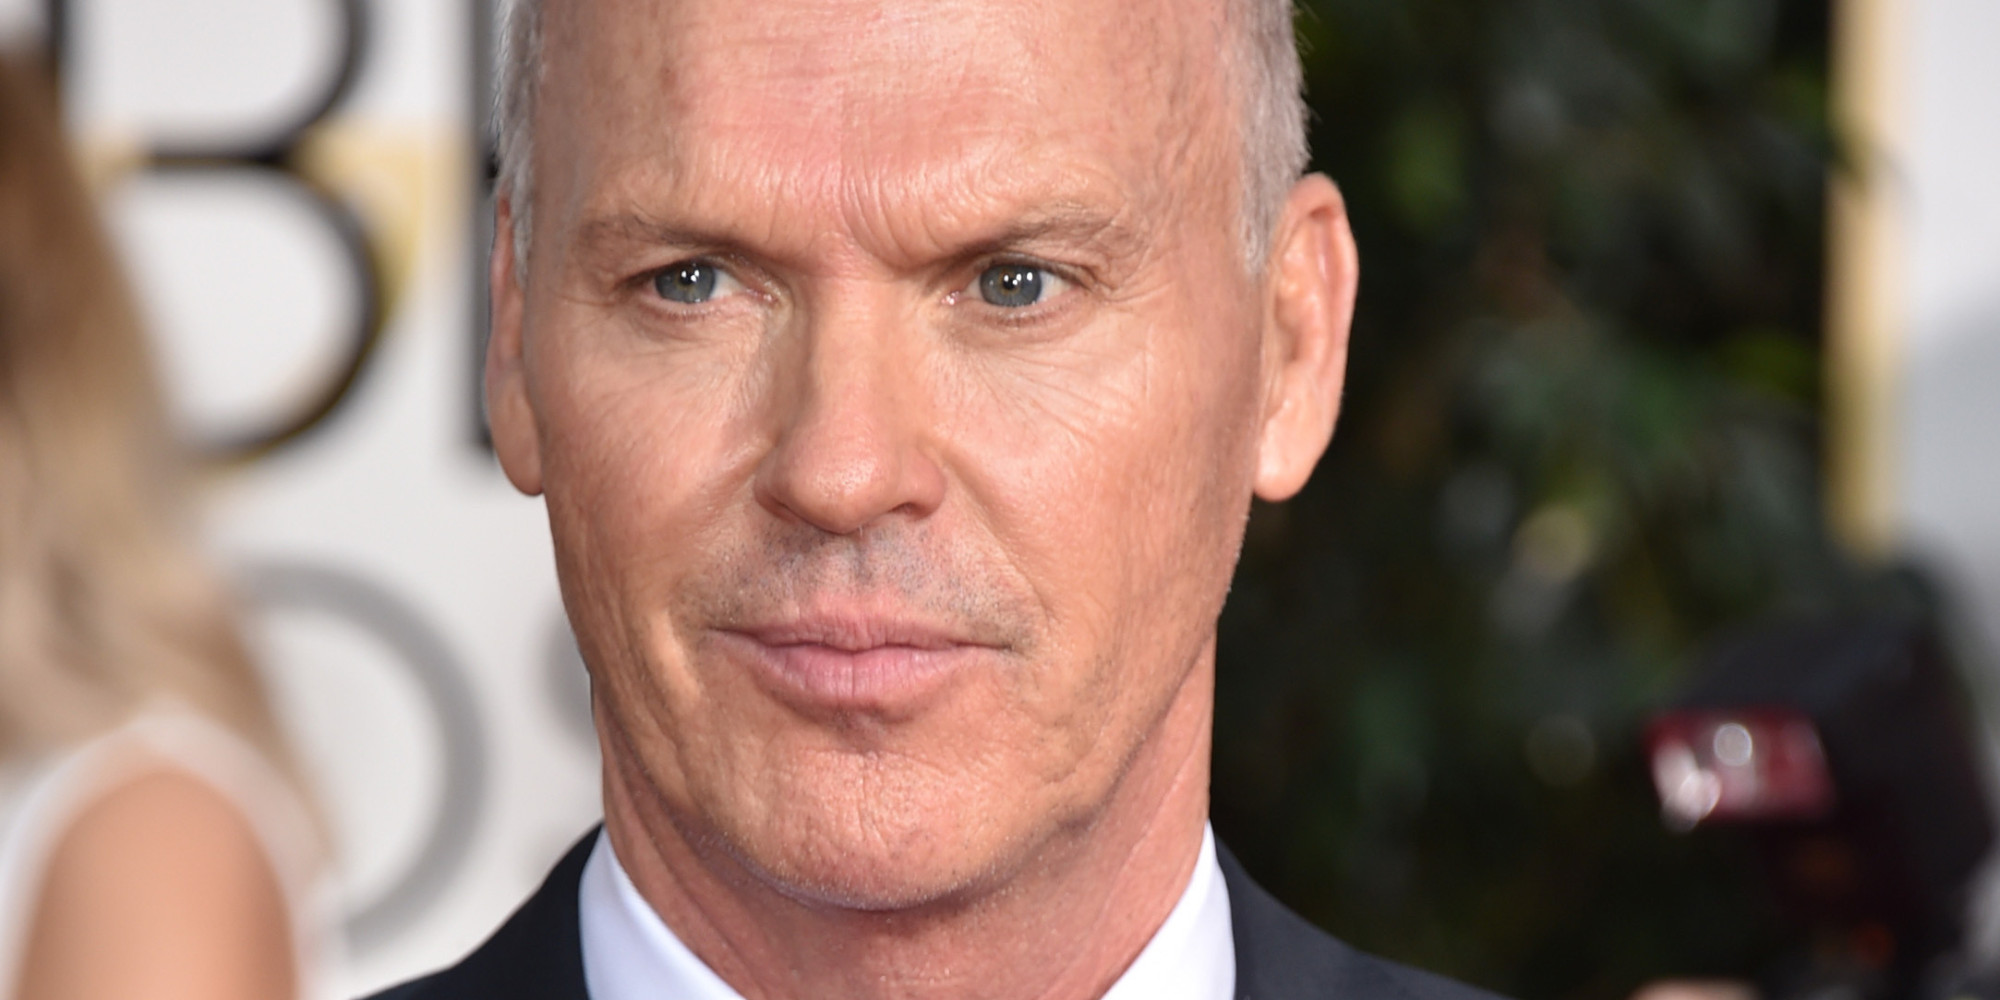 Michael Keaton arrives at the 72nd annual Golden Globe Awards at the Beverly Hilton Hotel on Sunday, Jan. 11, 2015, in Beverly Hills, Calif. (Photo by John Shearer/Invision/AP)